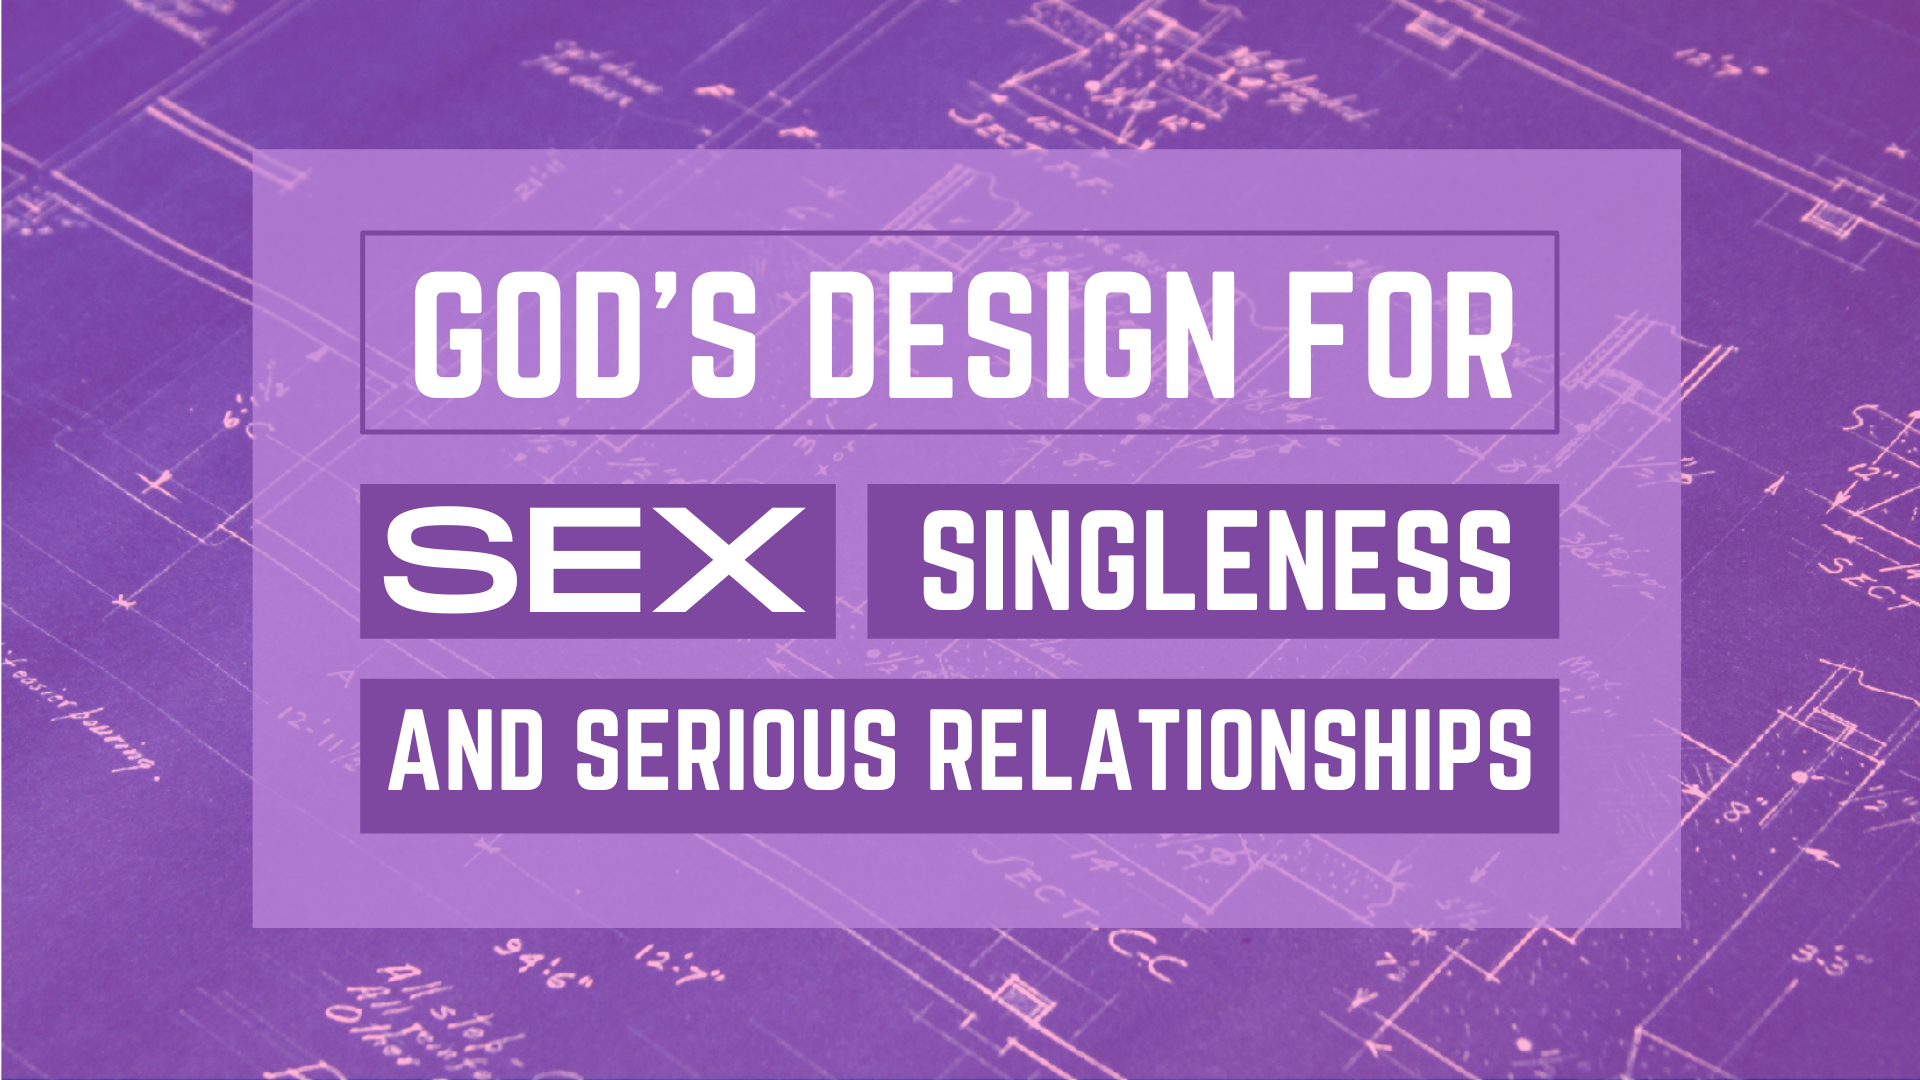 God's Design for Sex, Singleness and Serious Relationships